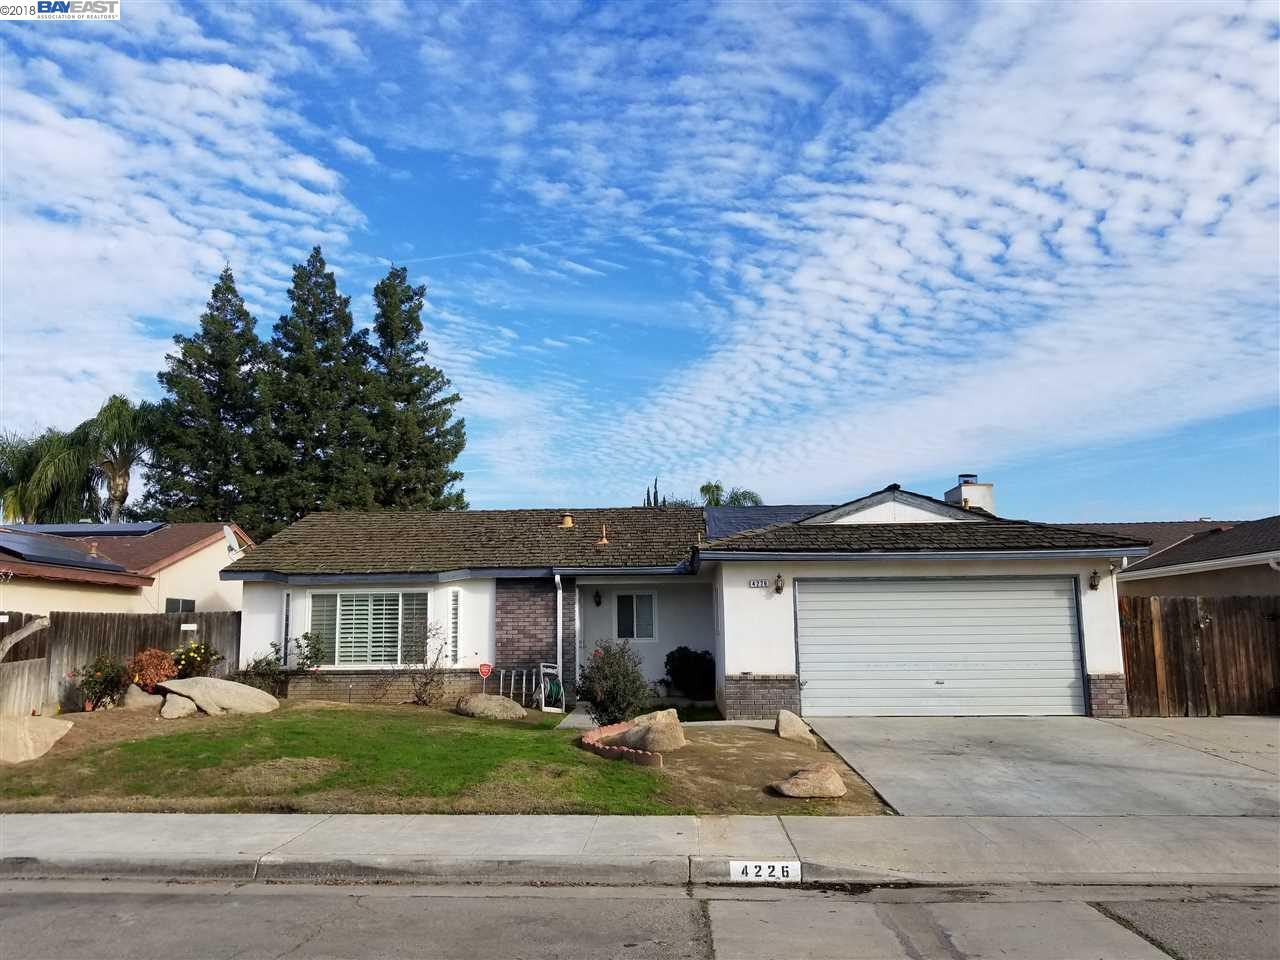 Single Family Home for Sale at 4226 N Constance Avenue 4226 N Constance Avenue Fresno, California 93722 United States